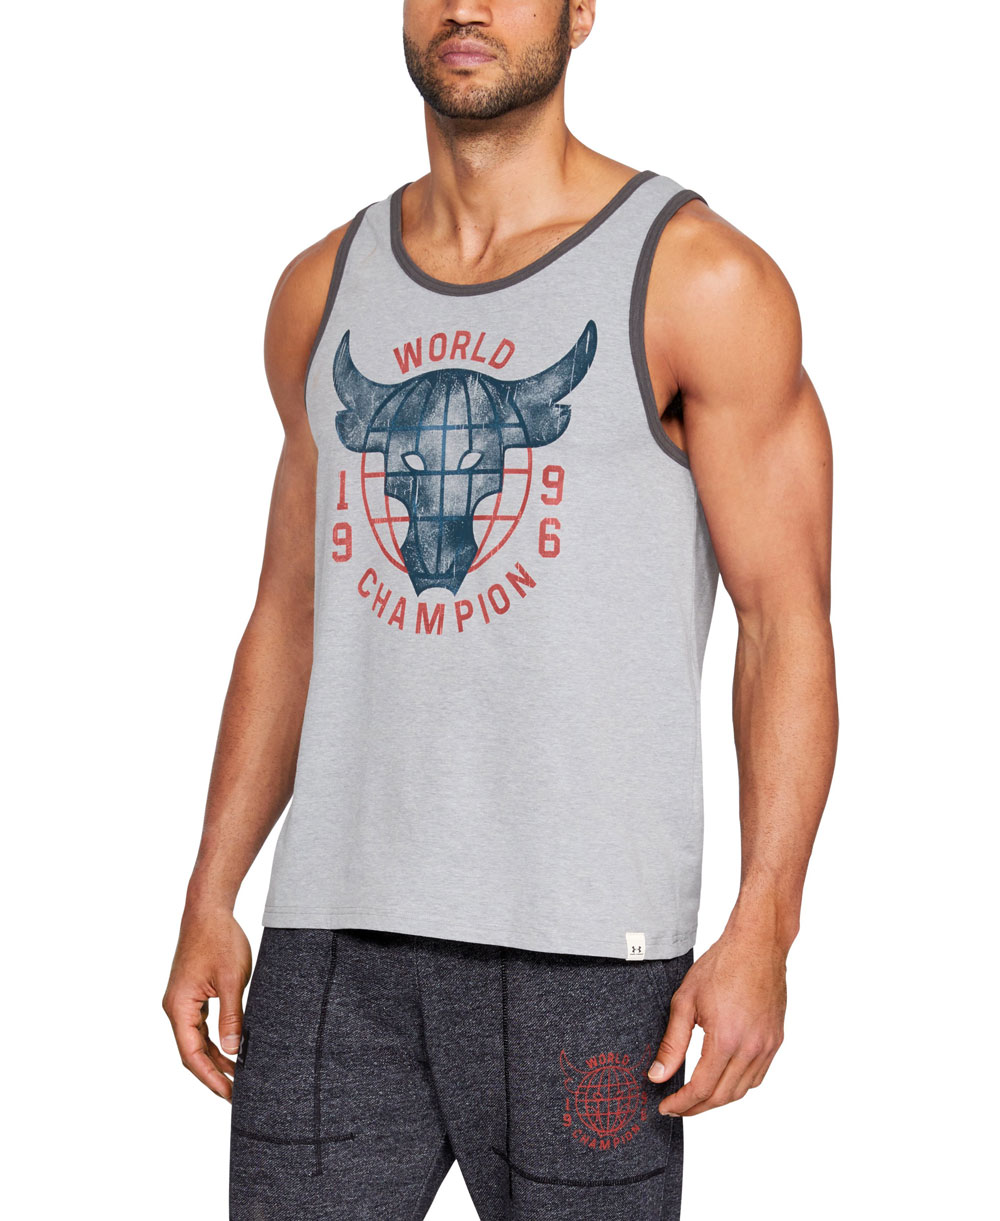 75666689e Project Rock 96 World Champion Camiseta sin Mangas para Hombre Steel Light  Heather